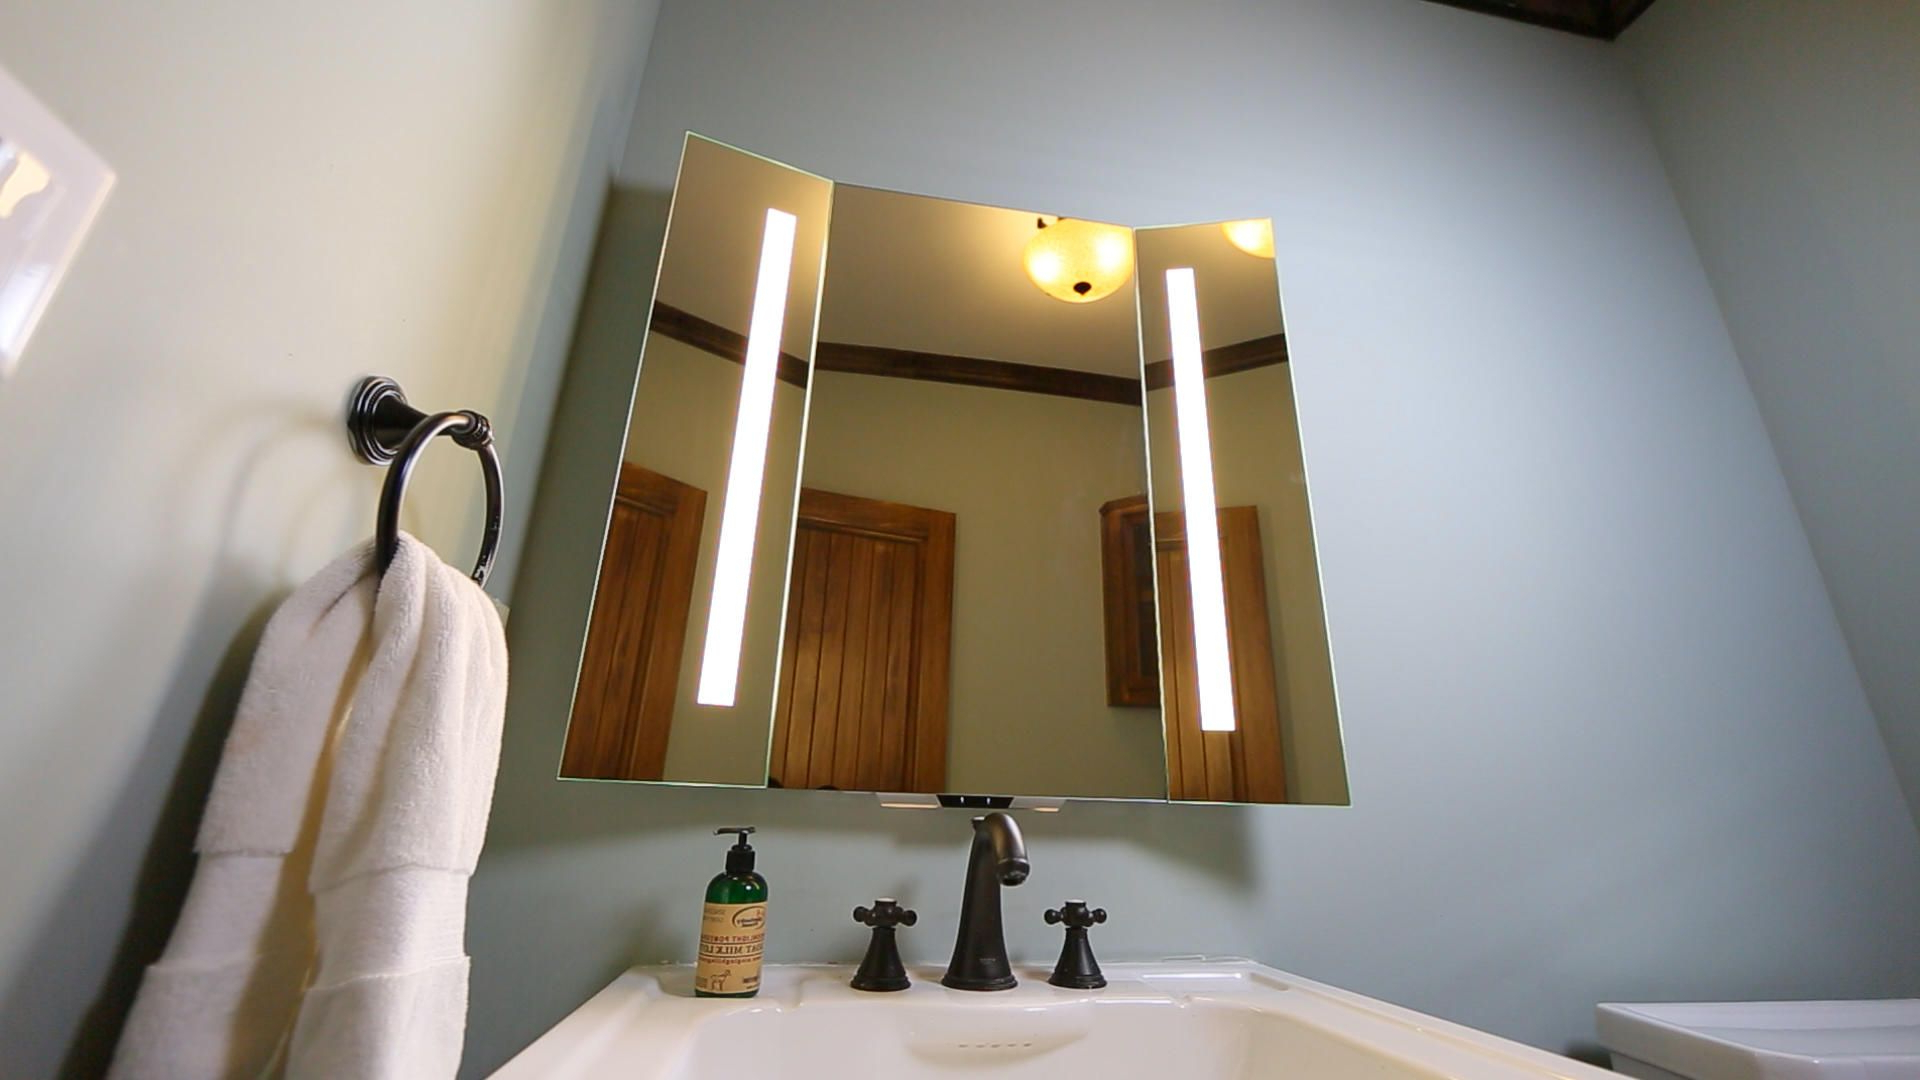 Most Recently Released Tri Fold Bathroom Wall Mirrors Pertaining To Kohler Put Alexa In Its Newest Bathroom Mirror (View 16 of 20)